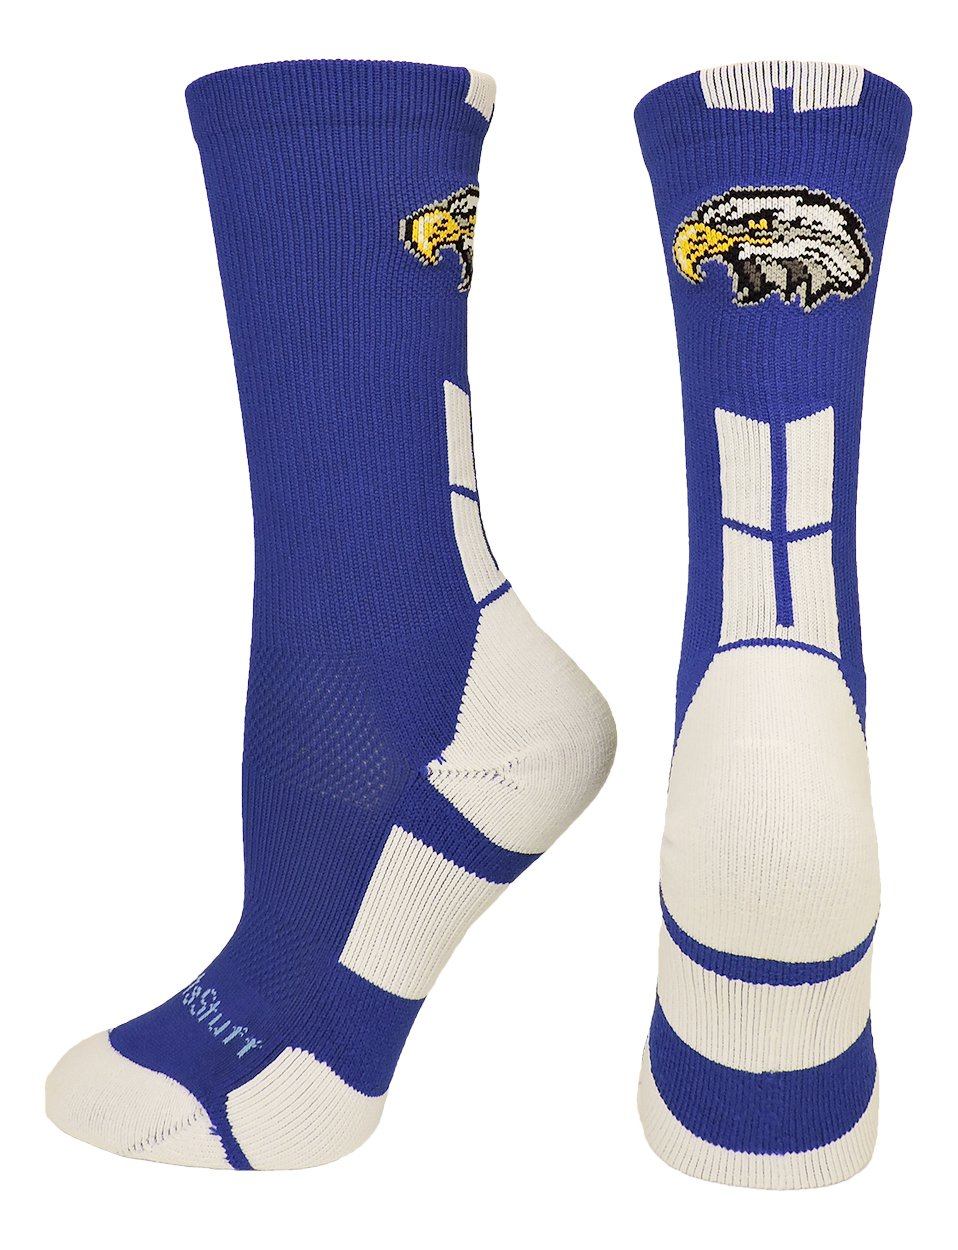 MadSportsStuff Eagles Logo Athletic Crew Socks (Royal/White, Large)